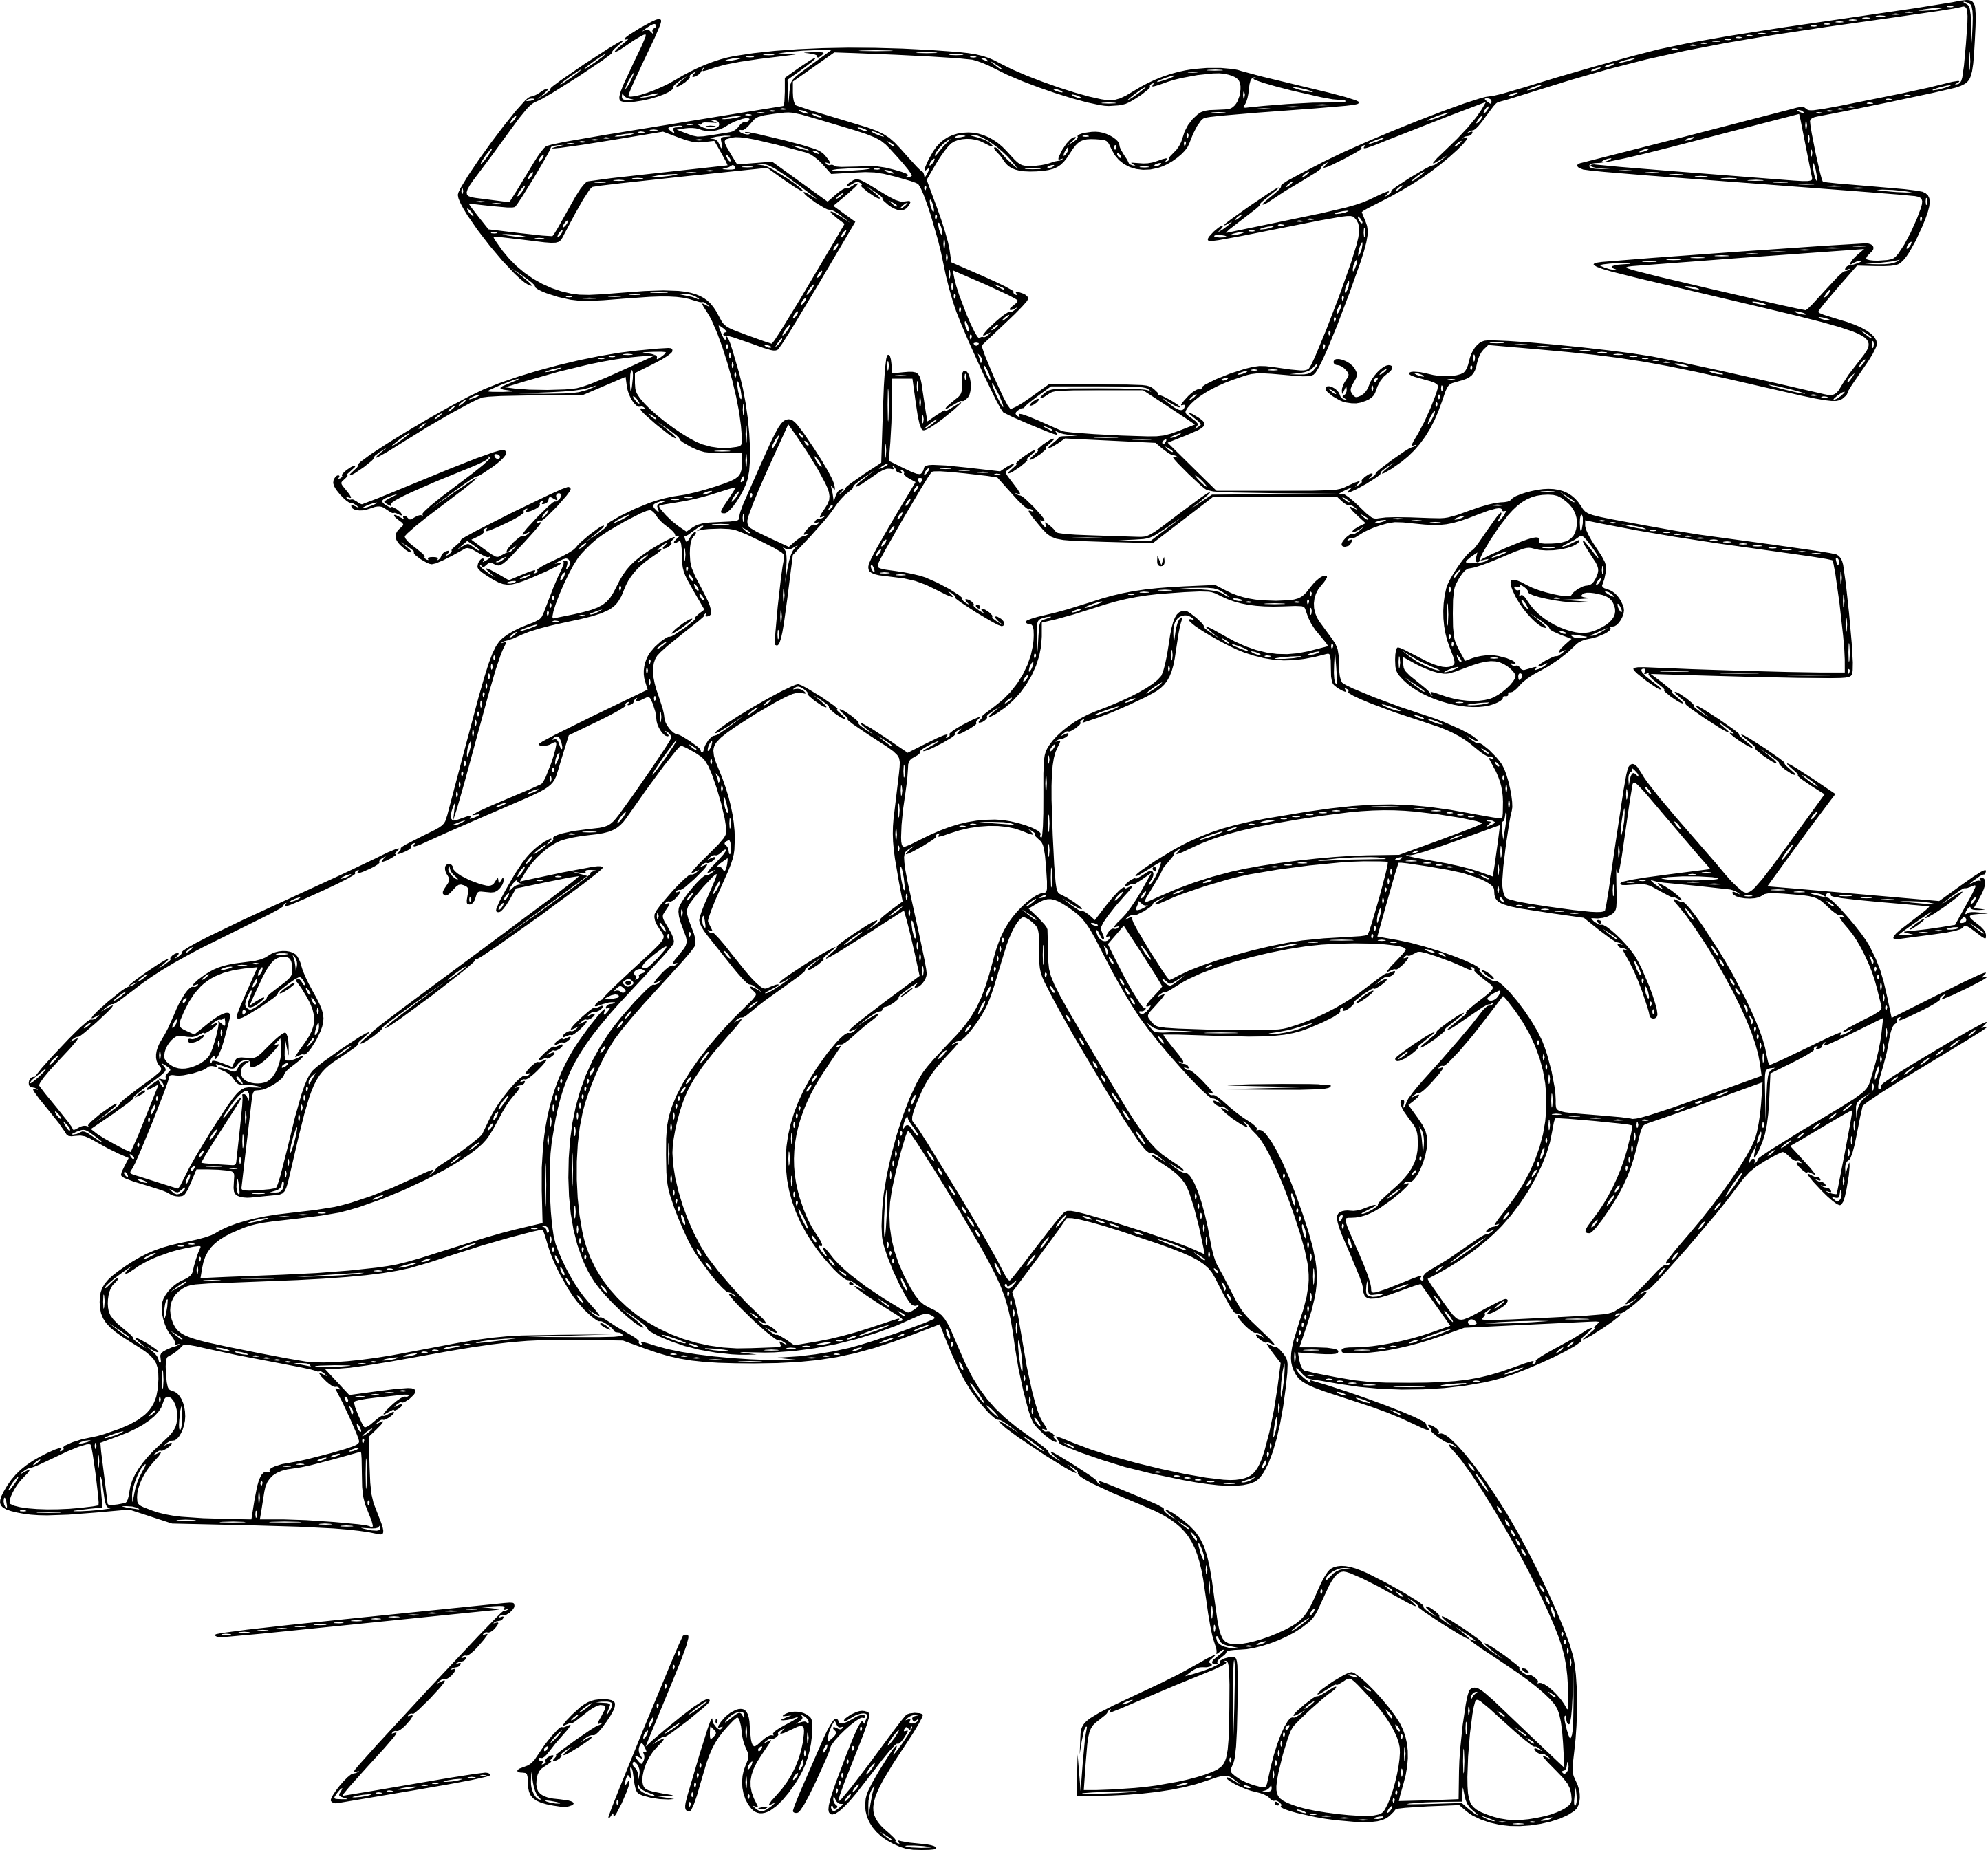 Coloriage de carte pokemon ex a imprimer - Coloriage de pokemon a imprimer ...